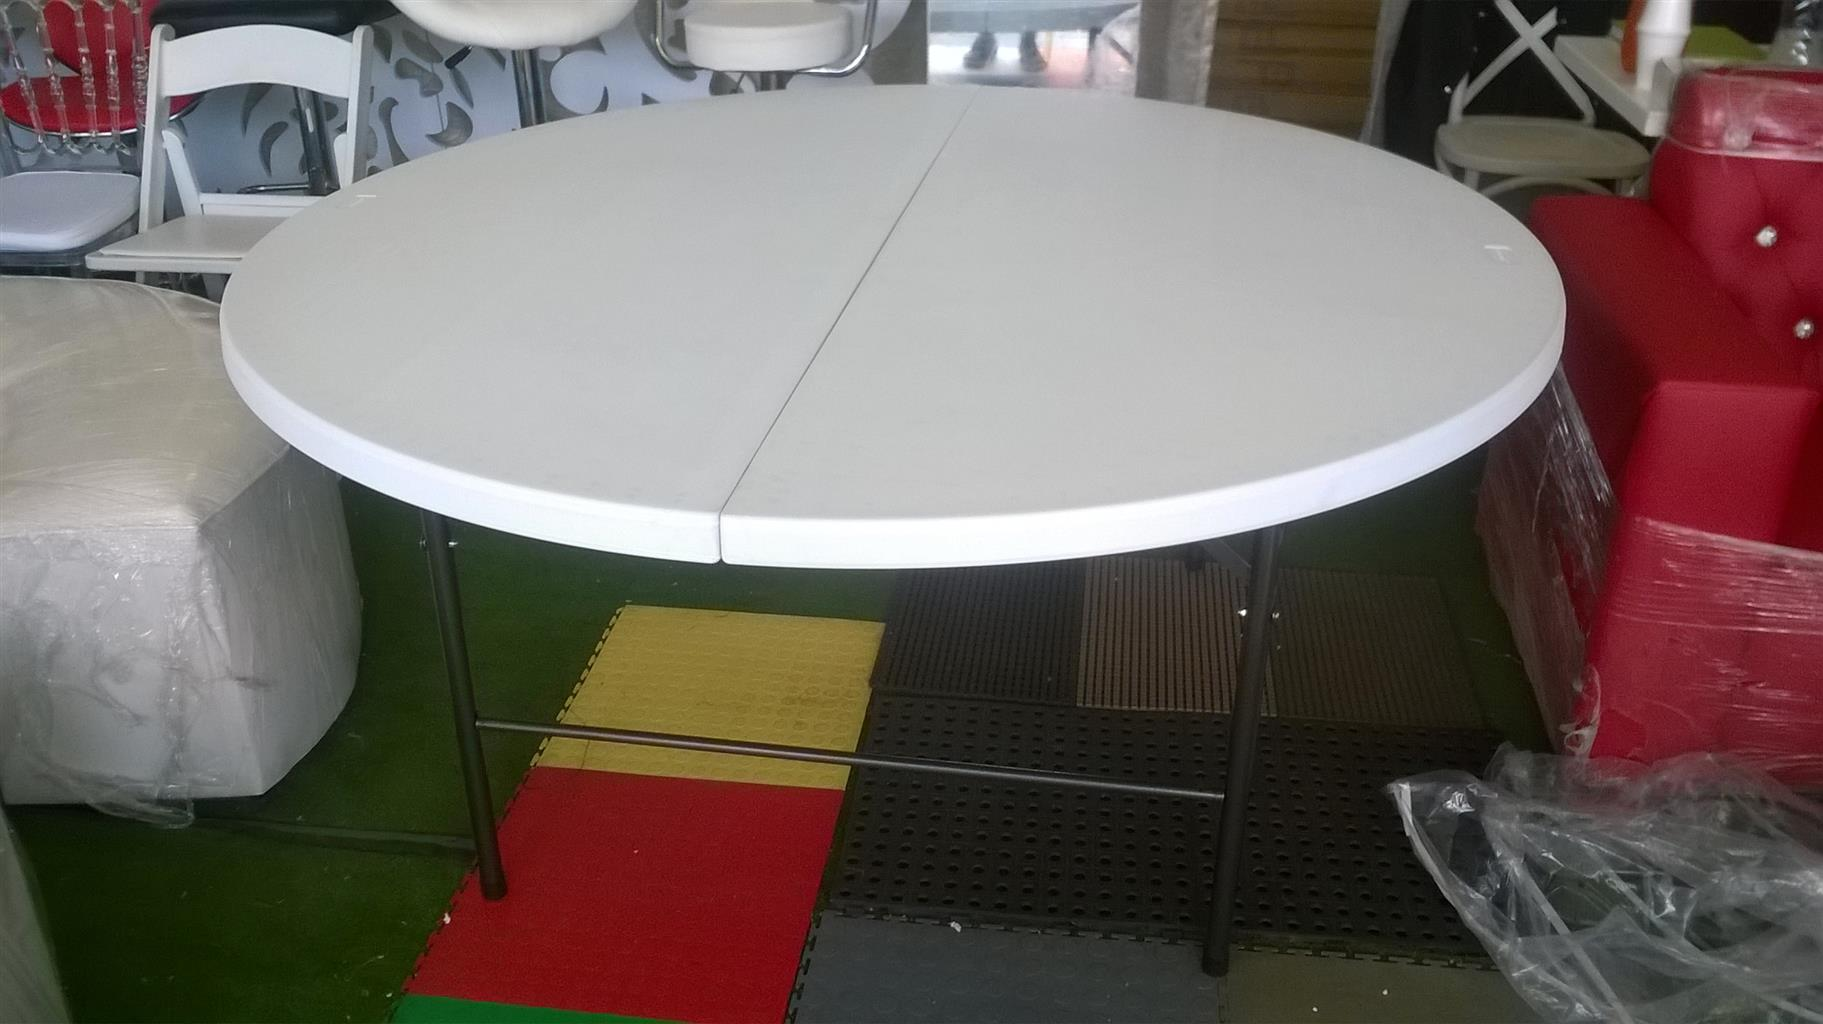 Round 10 Seater Plastic Fold Up Tables At Bargain Price Junk Mail